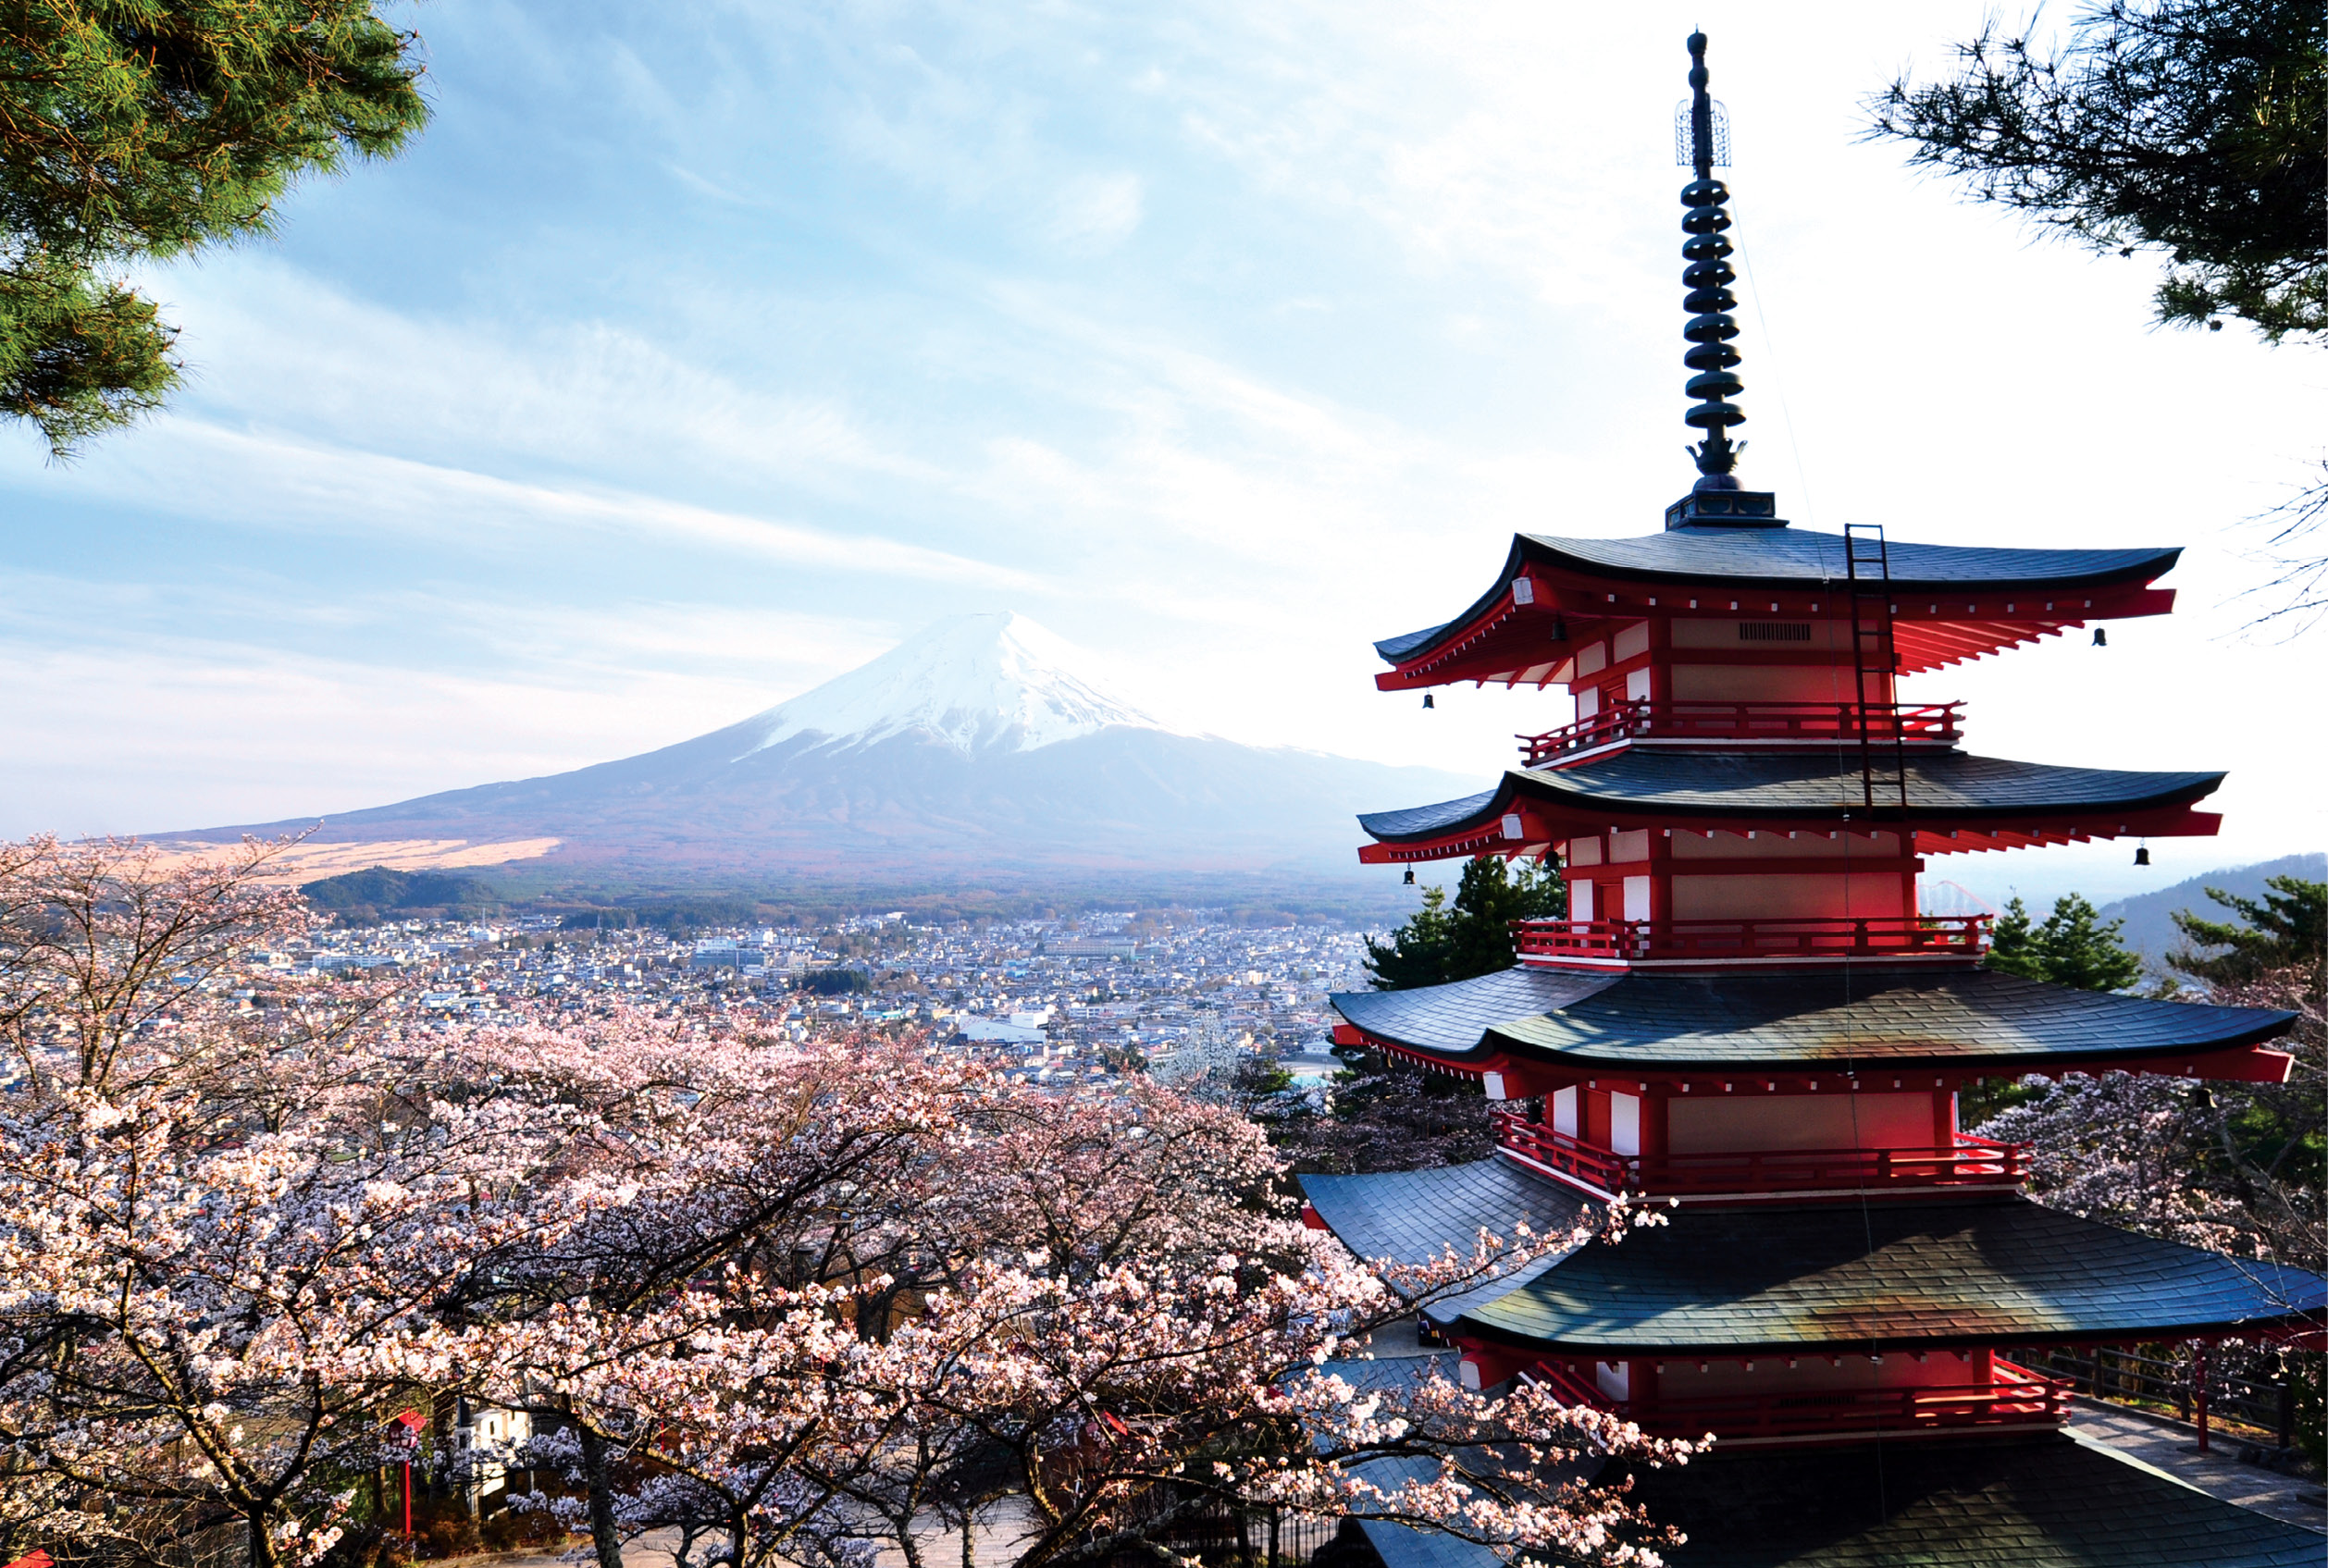 Red pagoda with Mt. Fuji in the background